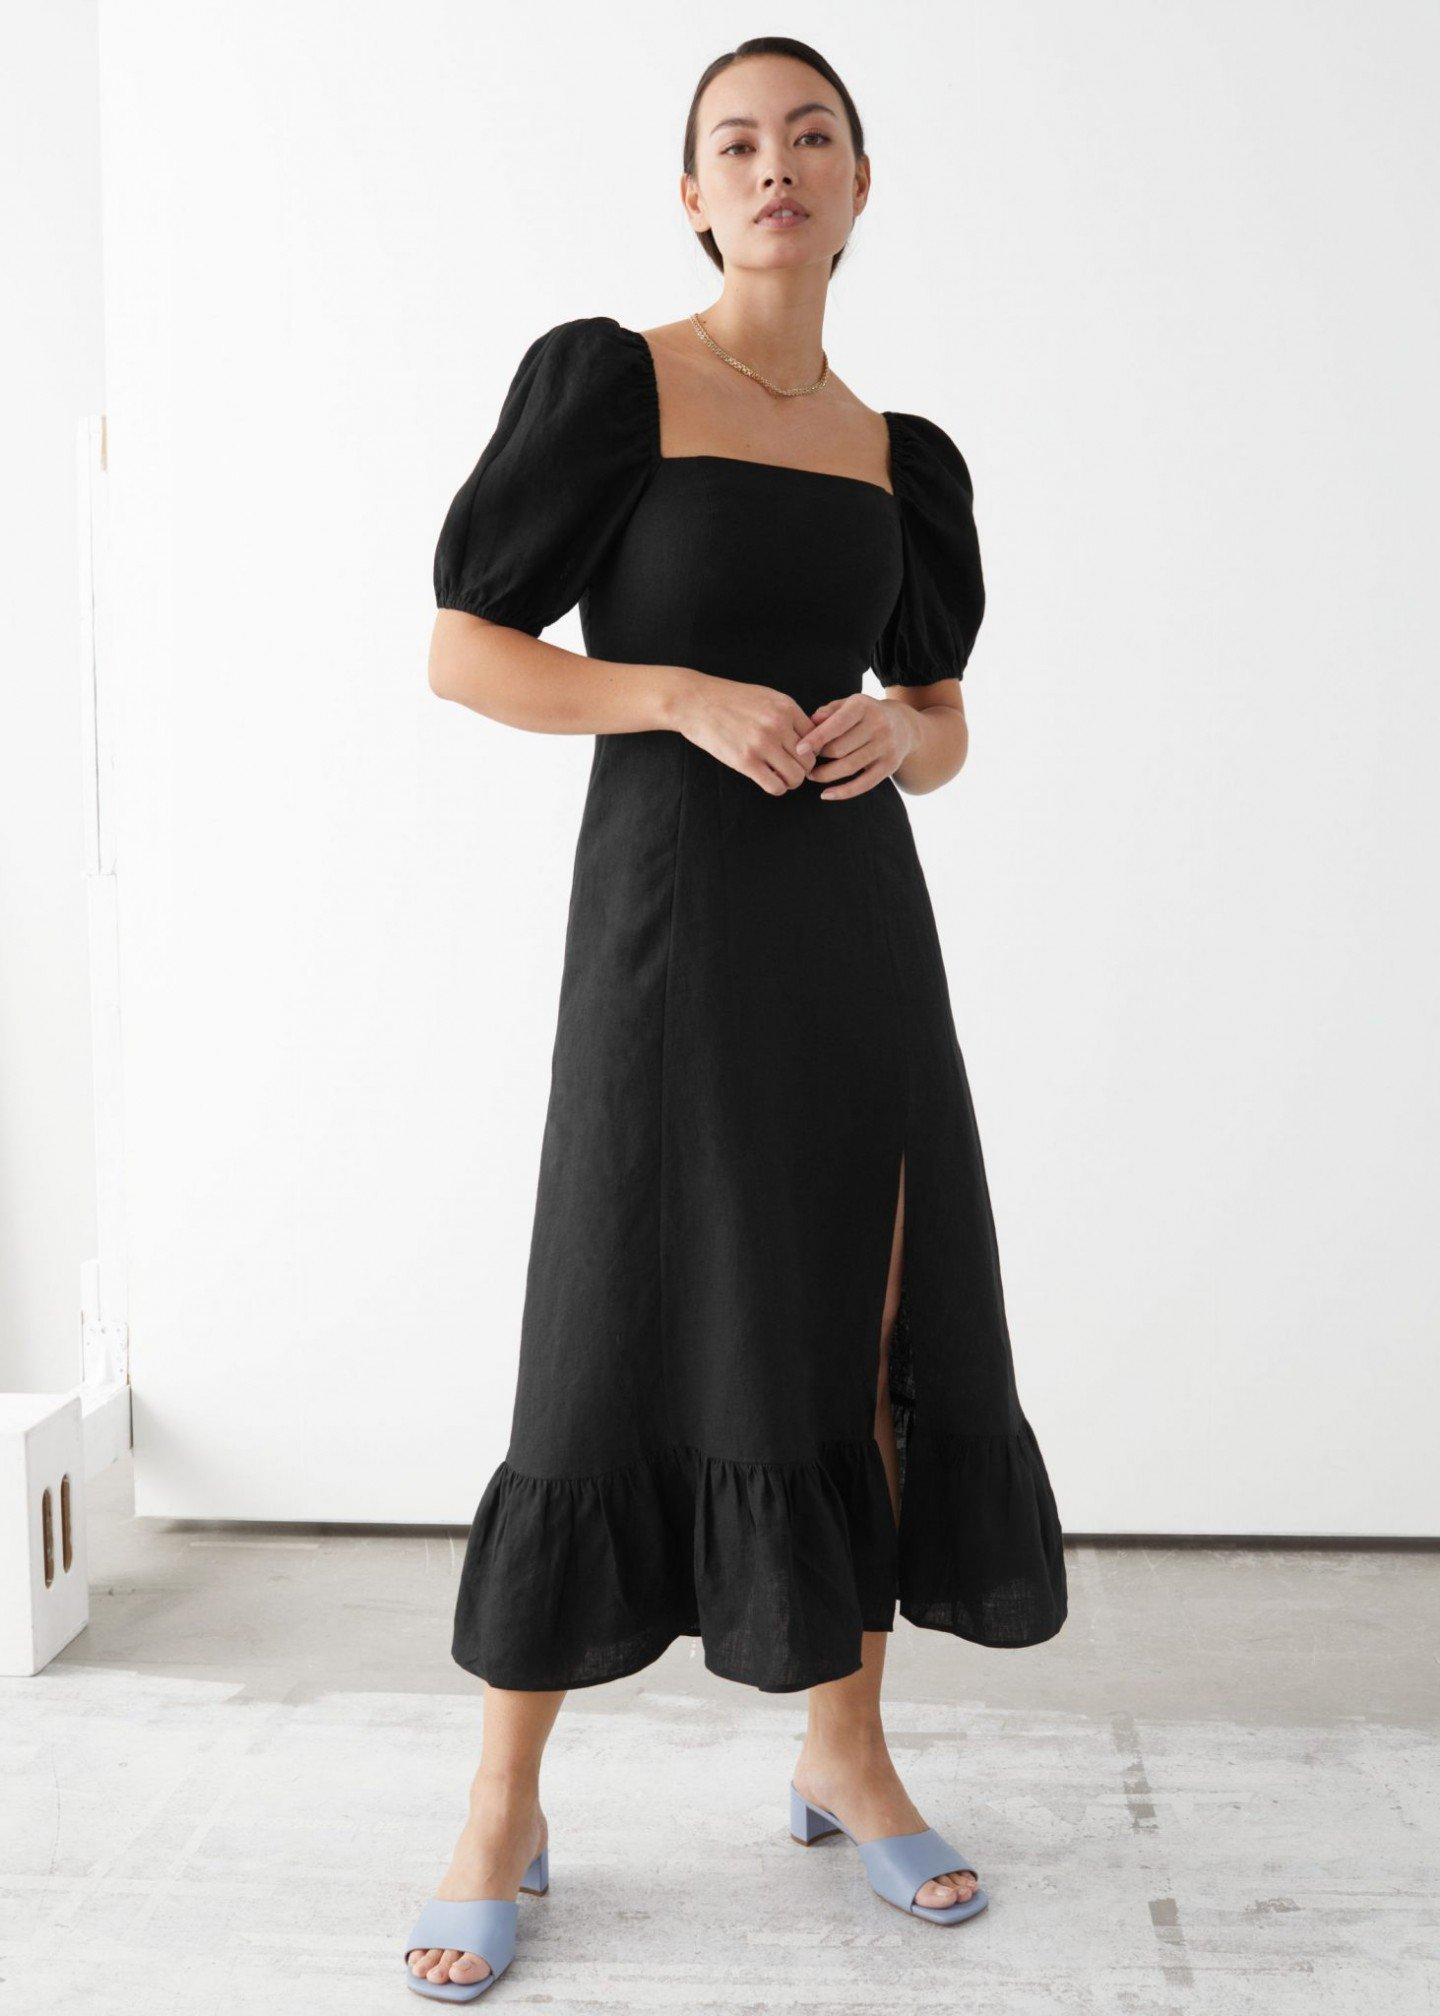 & OTHER STORIES Linen Puff Sleeve Midi Dress